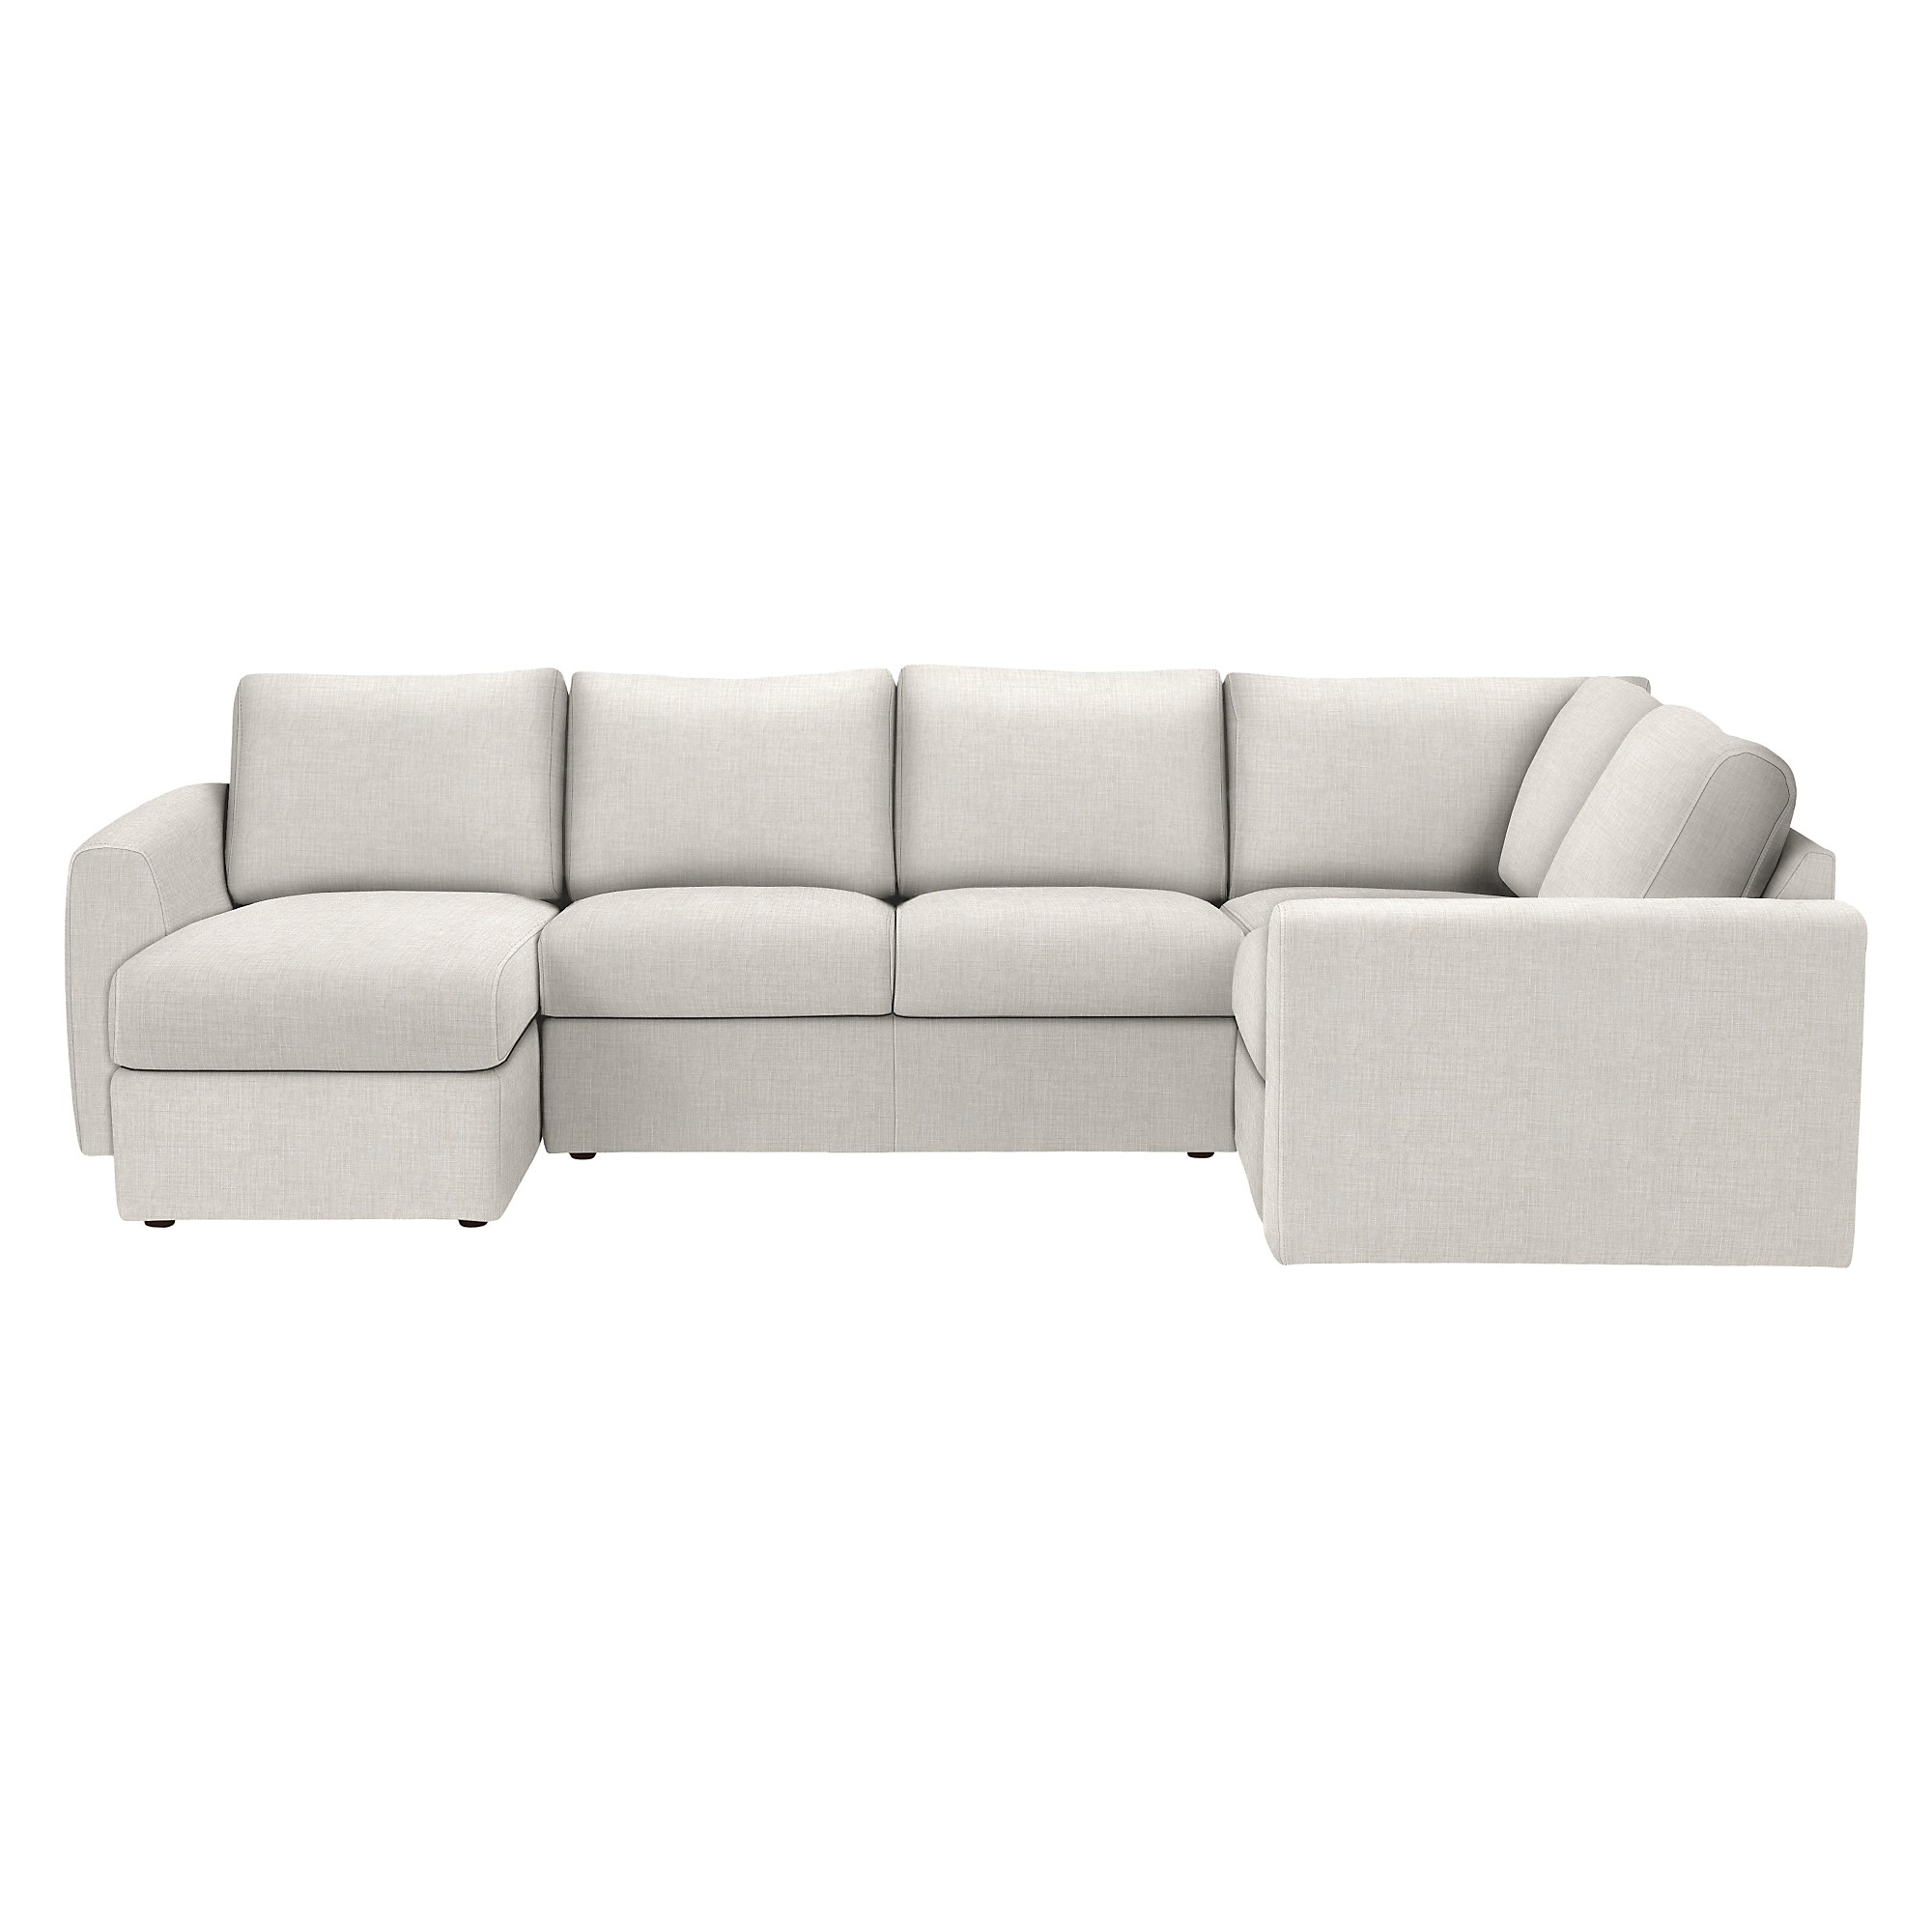 House by john lewis finlay ii corner chaise end sofa for Chaise end sofa uk